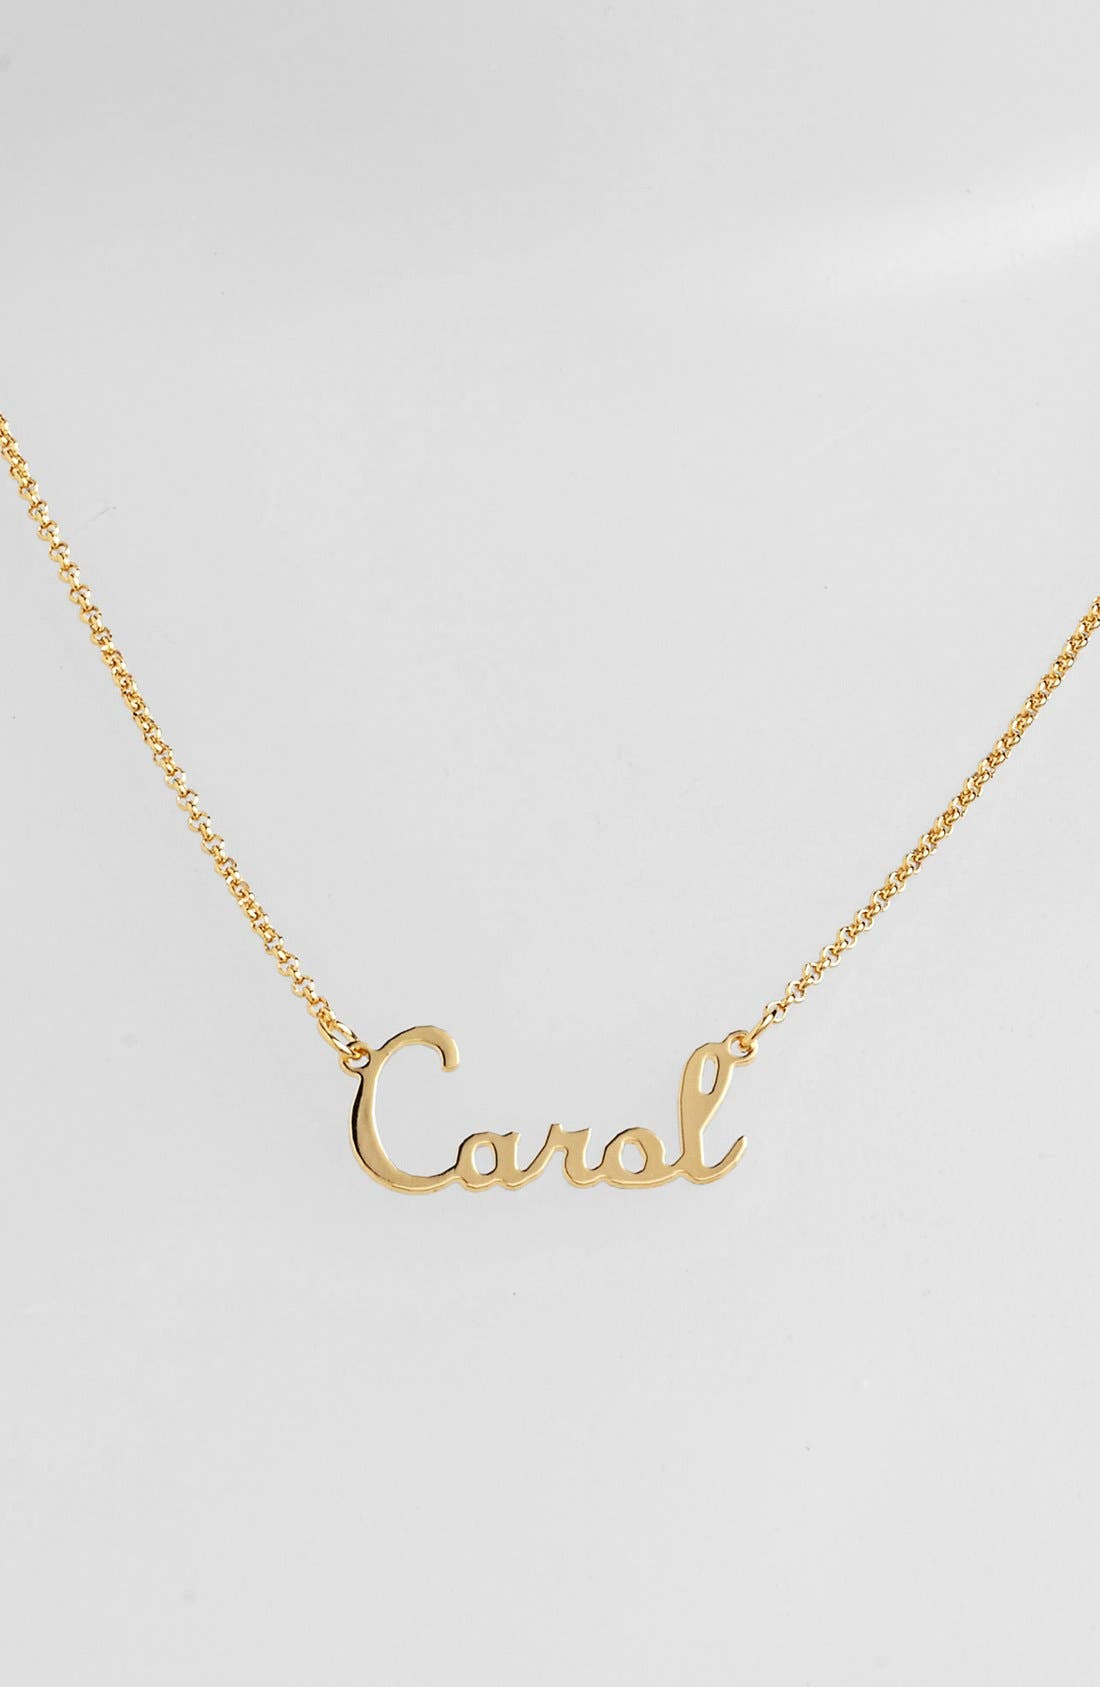 Personalized Script Name with Cross Necklace,                             Main thumbnail 1, color,                             GOLD